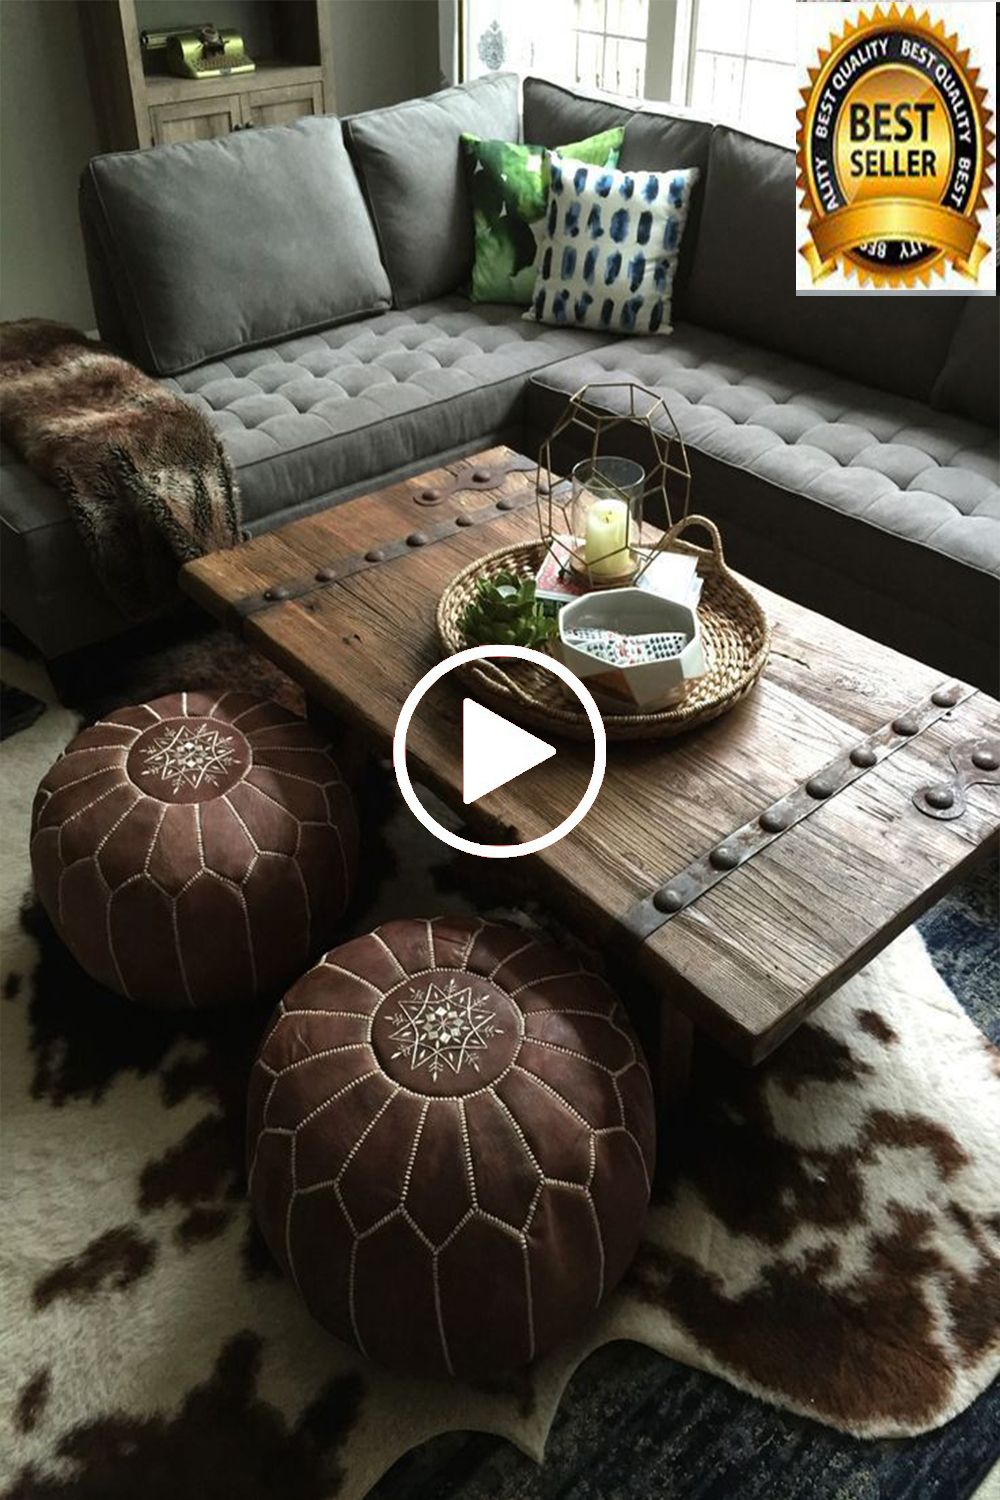 50 Off Moroccan Pouf Outdoor Furniture Ottoman Pouffe Etsy In 2020 Coffee Table Inspiration Floor Seating Living Room Living Decor [ 1500 x 1000 Pixel ]